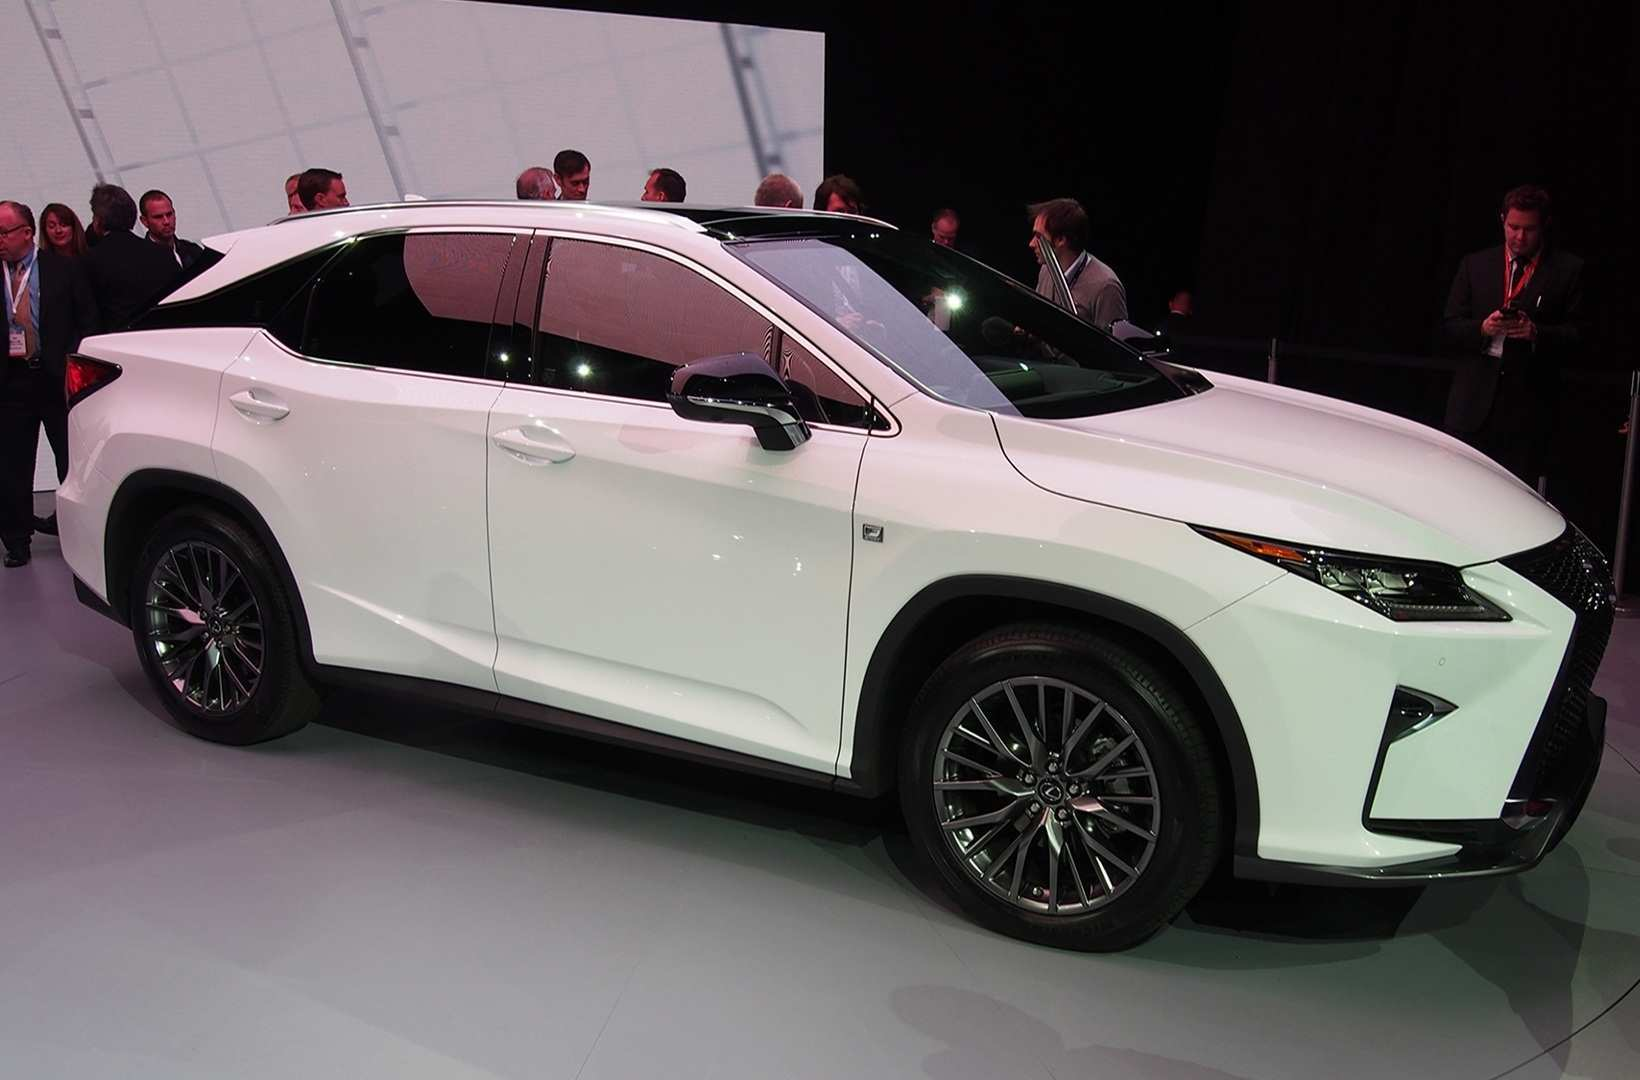 56 Gallery of New Lexus Rx 350 Redesign 2019 Release Specs And Review Pricing by New Lexus Rx 350 Redesign 2019 Release Specs And Review